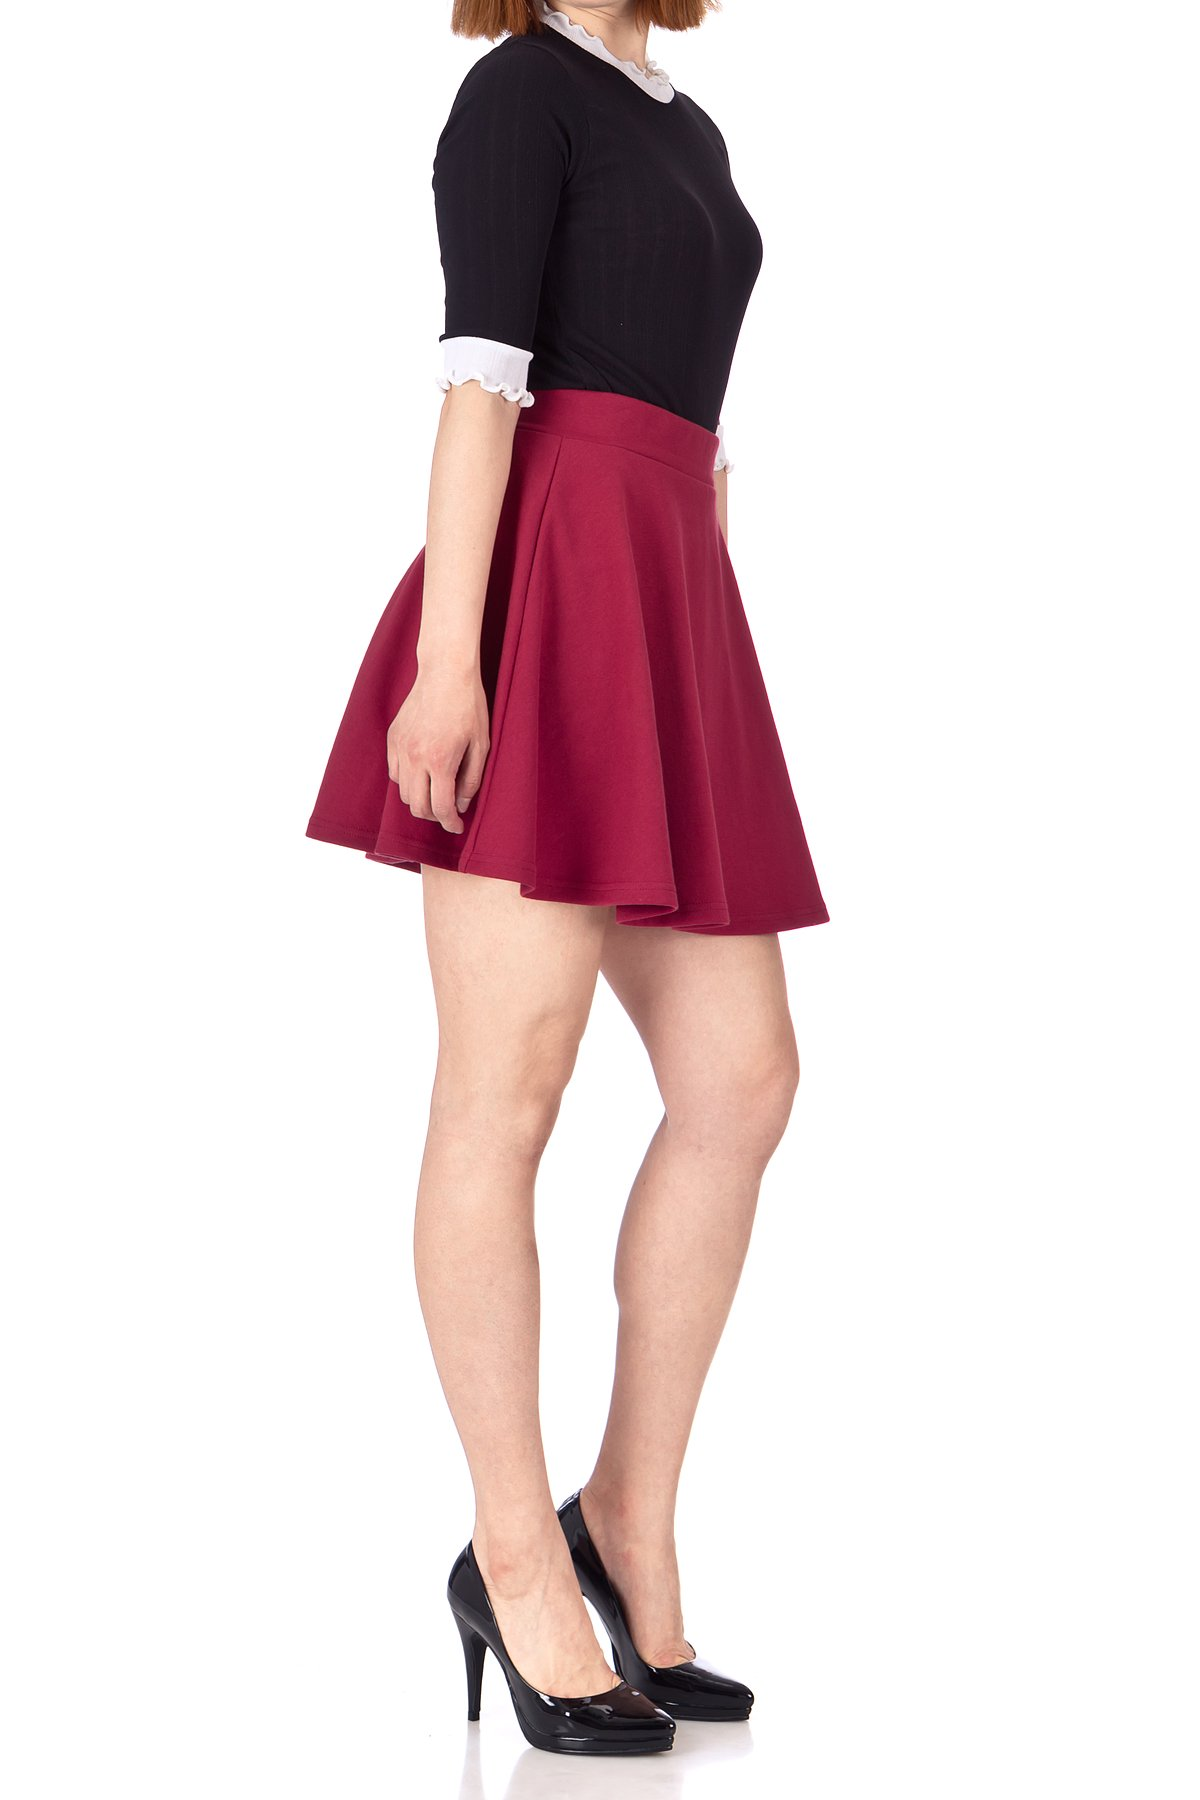 Basic Solid Stretchy Cotton High Waist line Flared Skater Mini Skirt Burgundy 04